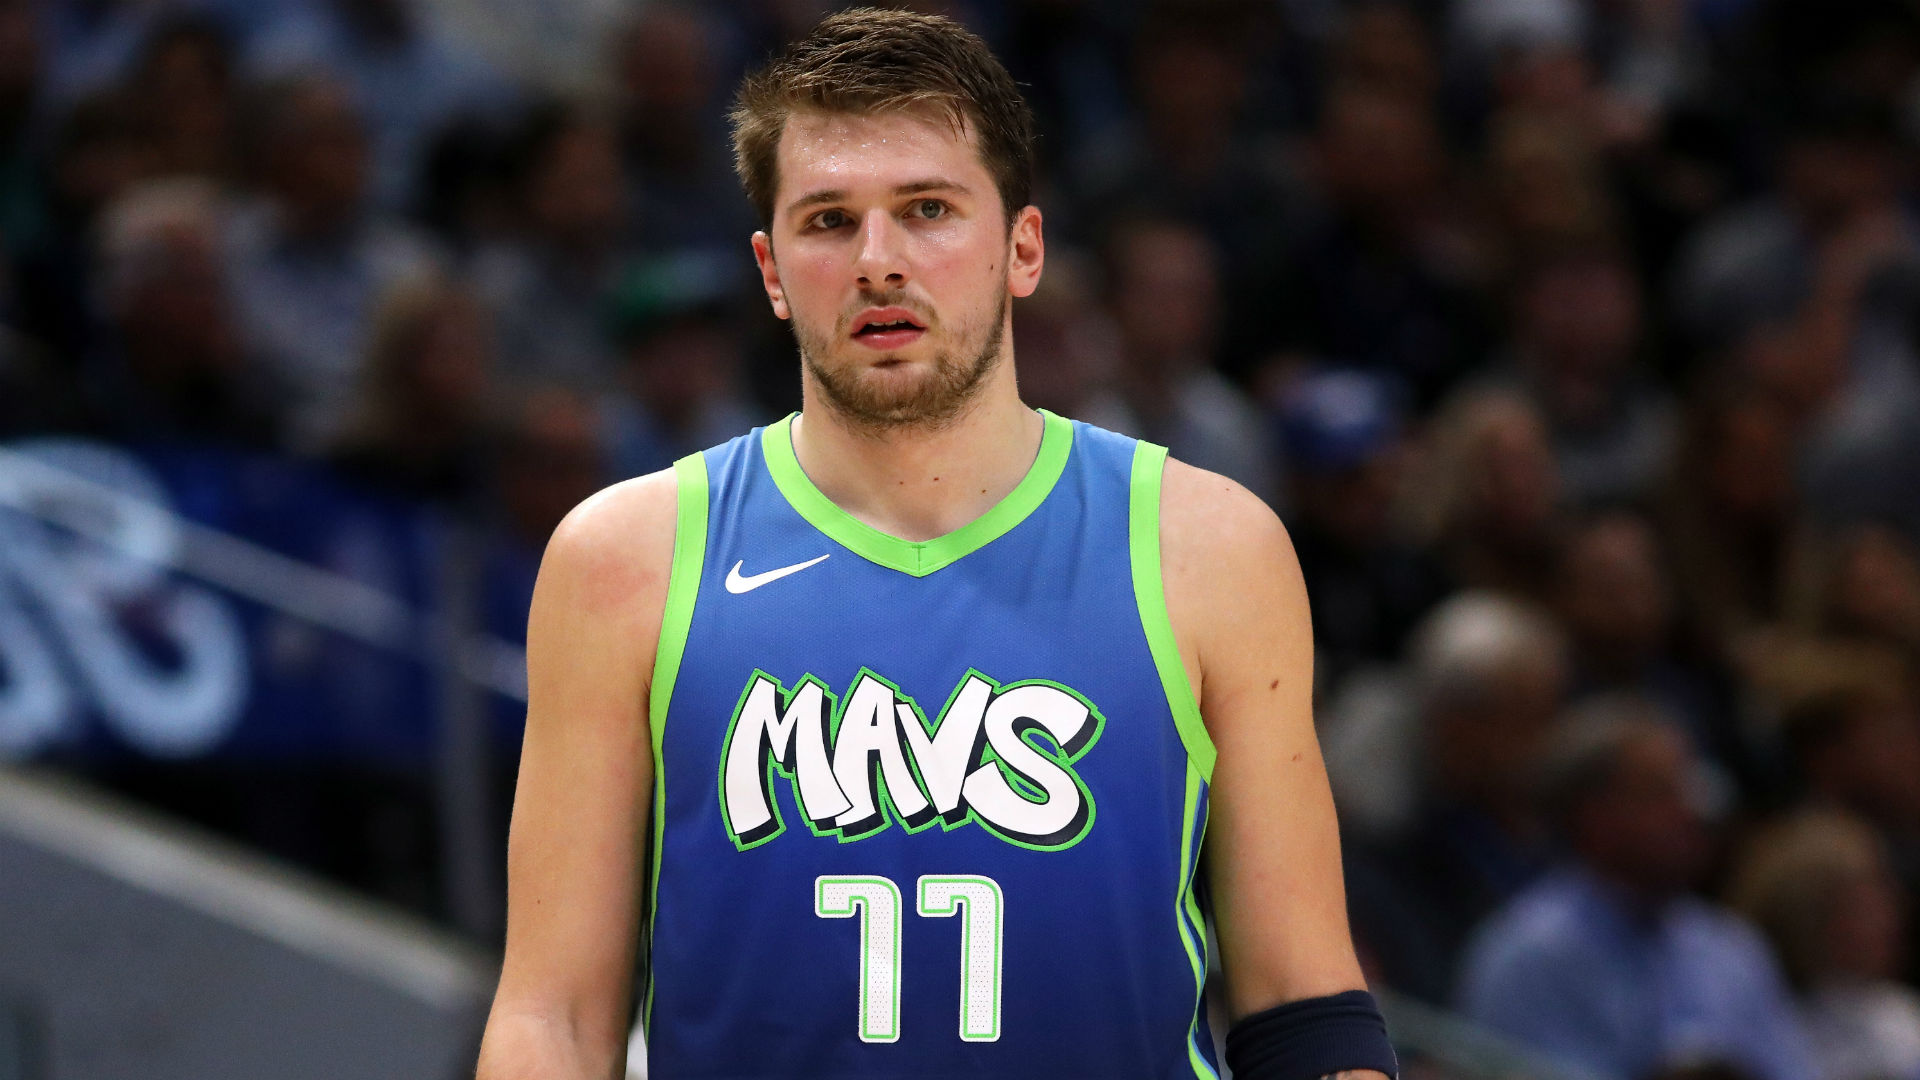 Luka Doncic having 'breathtaking' year - Mavs coach Carlisle